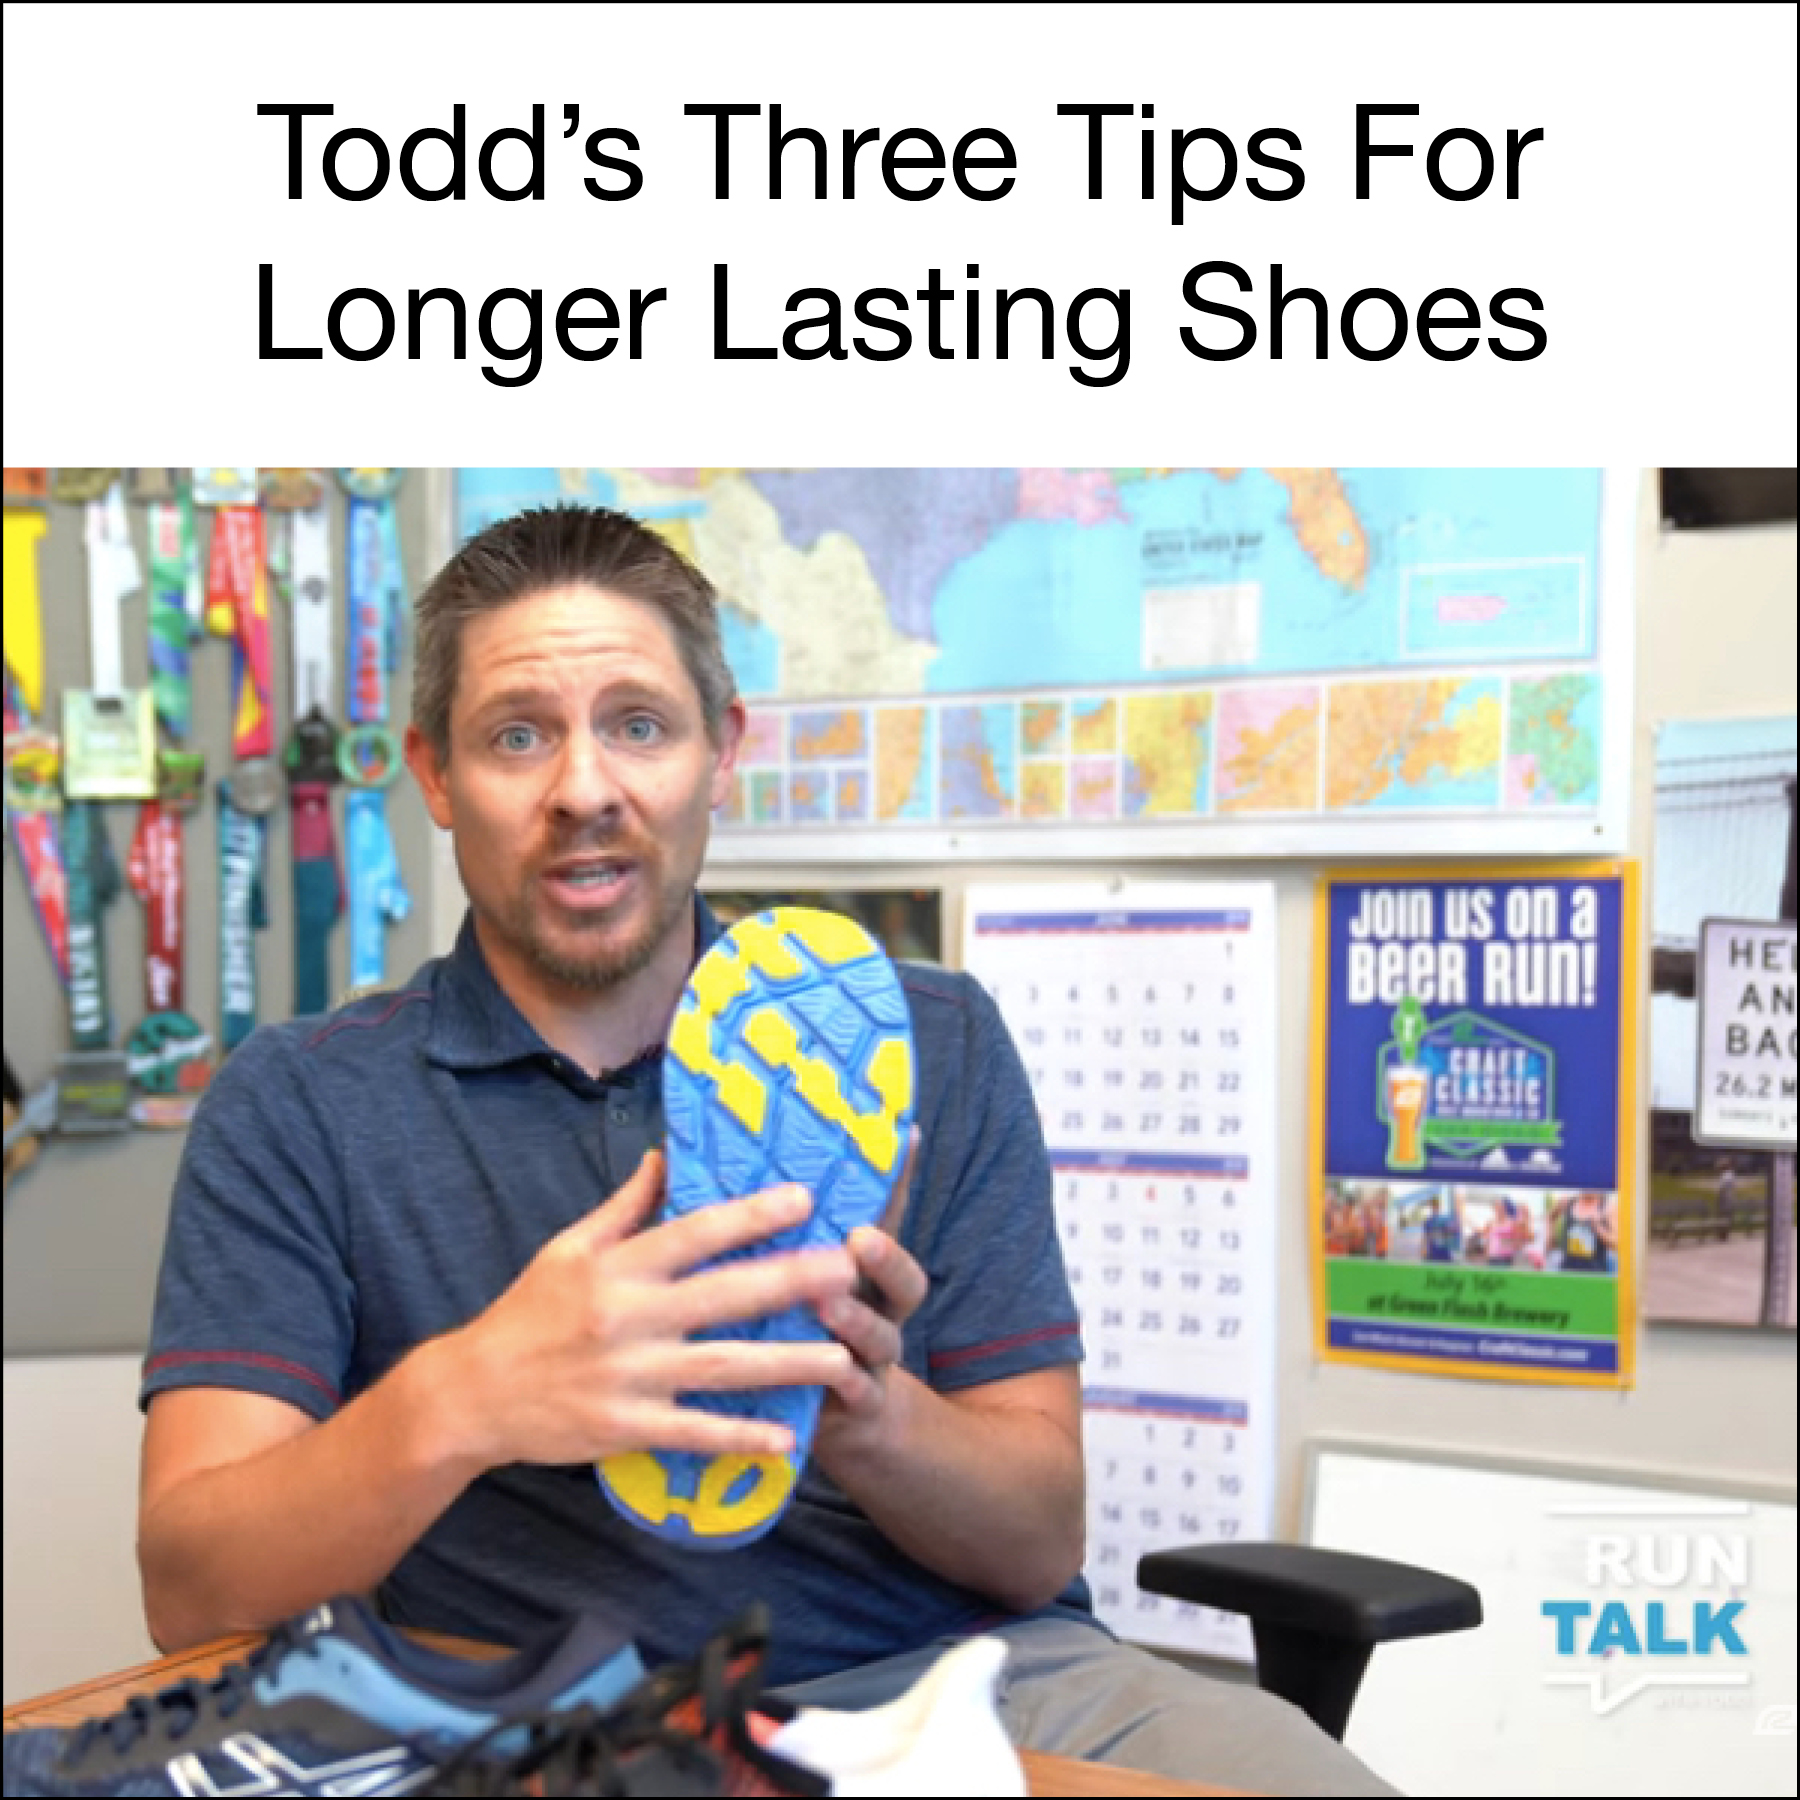 Todd's Tips For Longer Lasting Shoes